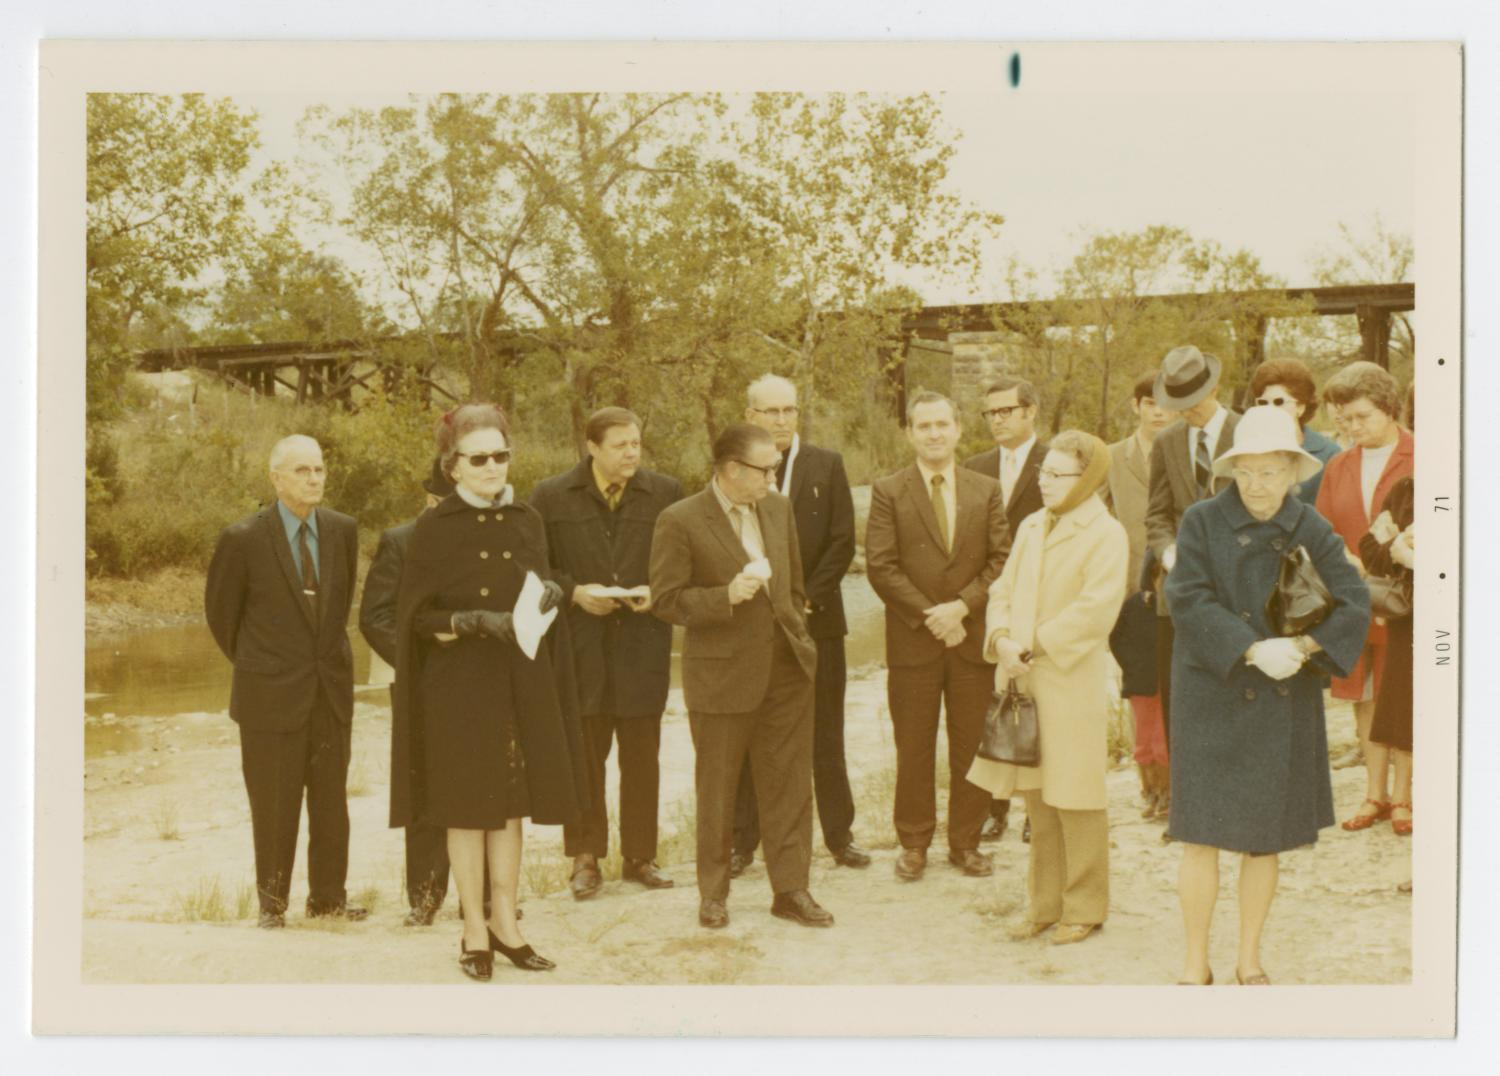 [Group Standing at Round Rock Marker Ceremony], Photograph taken facing west of several individuals gathered for a historic marker dedication ceremony for Round Rock in Brushy Creek.. A woman in sunglasses an cape styled coat can be seen in the left foreground, while a woman in a blue coat and white hat can be seen to the right. A railroad bridge can be seen in the background and a creek can be seen to the left, beyond the group.,